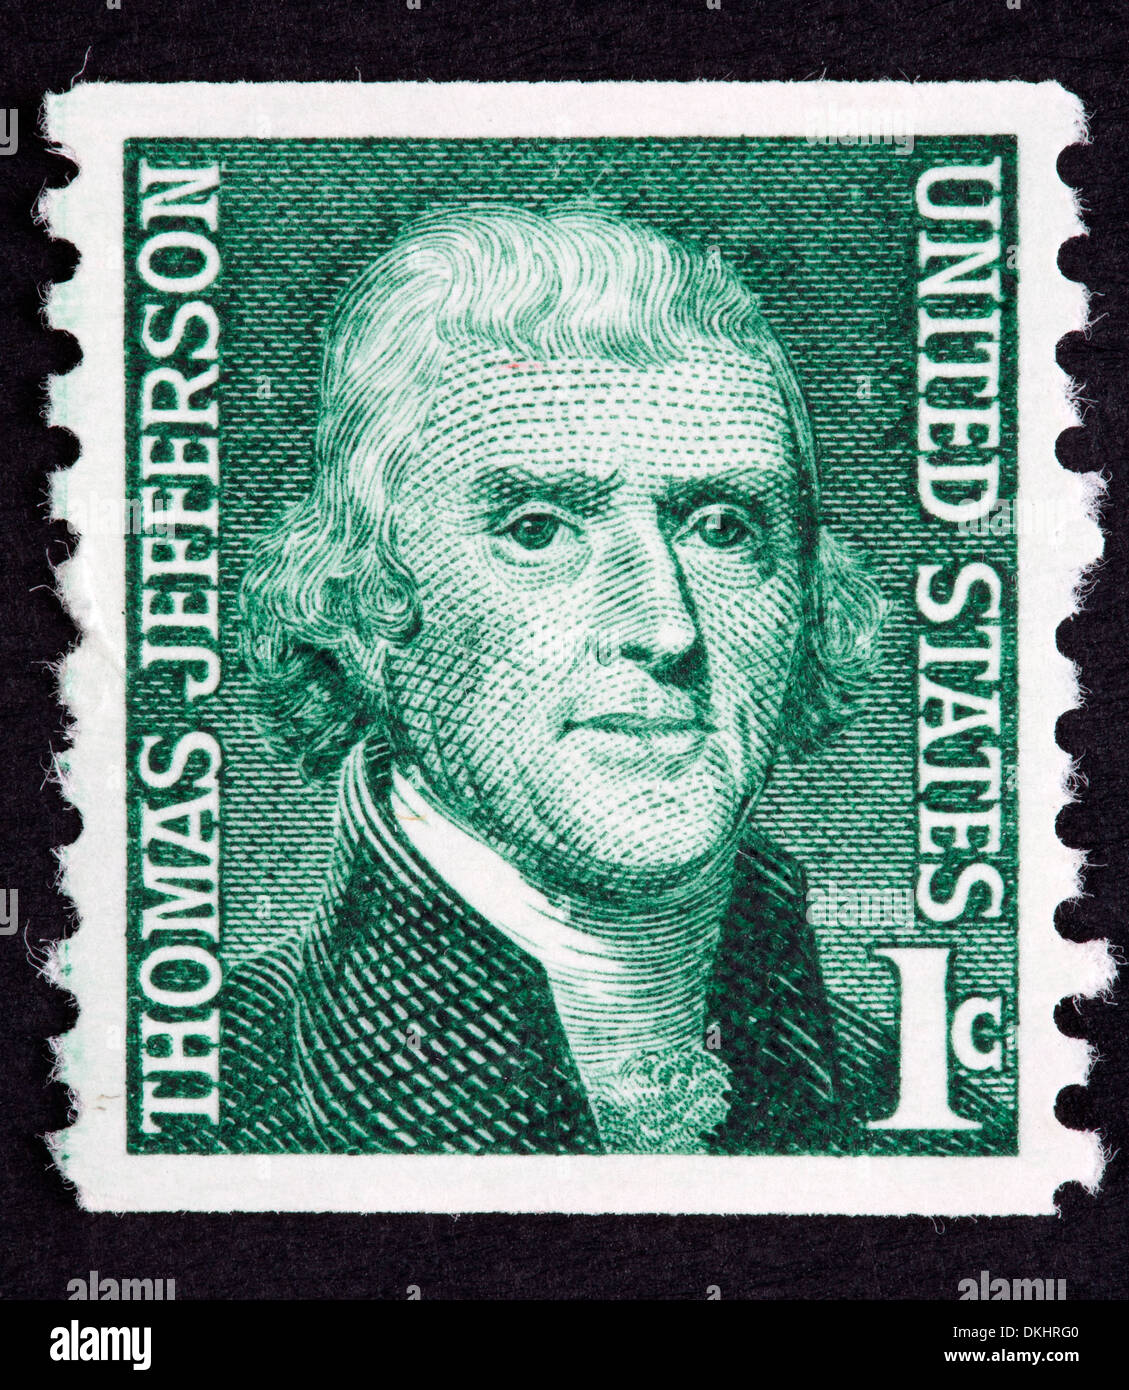 Jefferson Collection Stock Photos & Jefferson Collection Stock ...